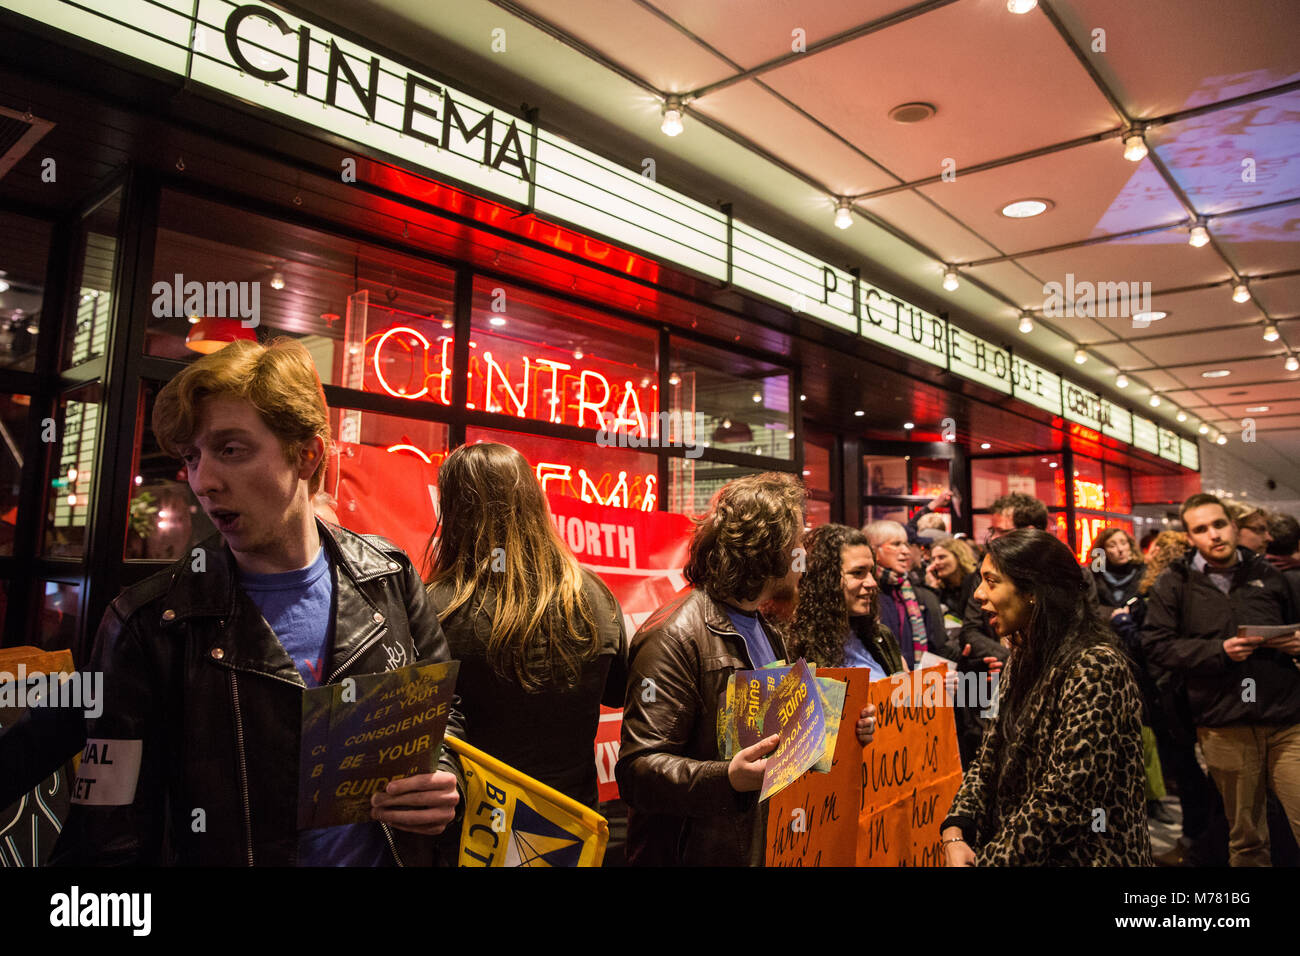 London, UK. 8th March, 2018. Striking cinema workers and supporters on the picket line at Picturehouse Central on - Stock Image